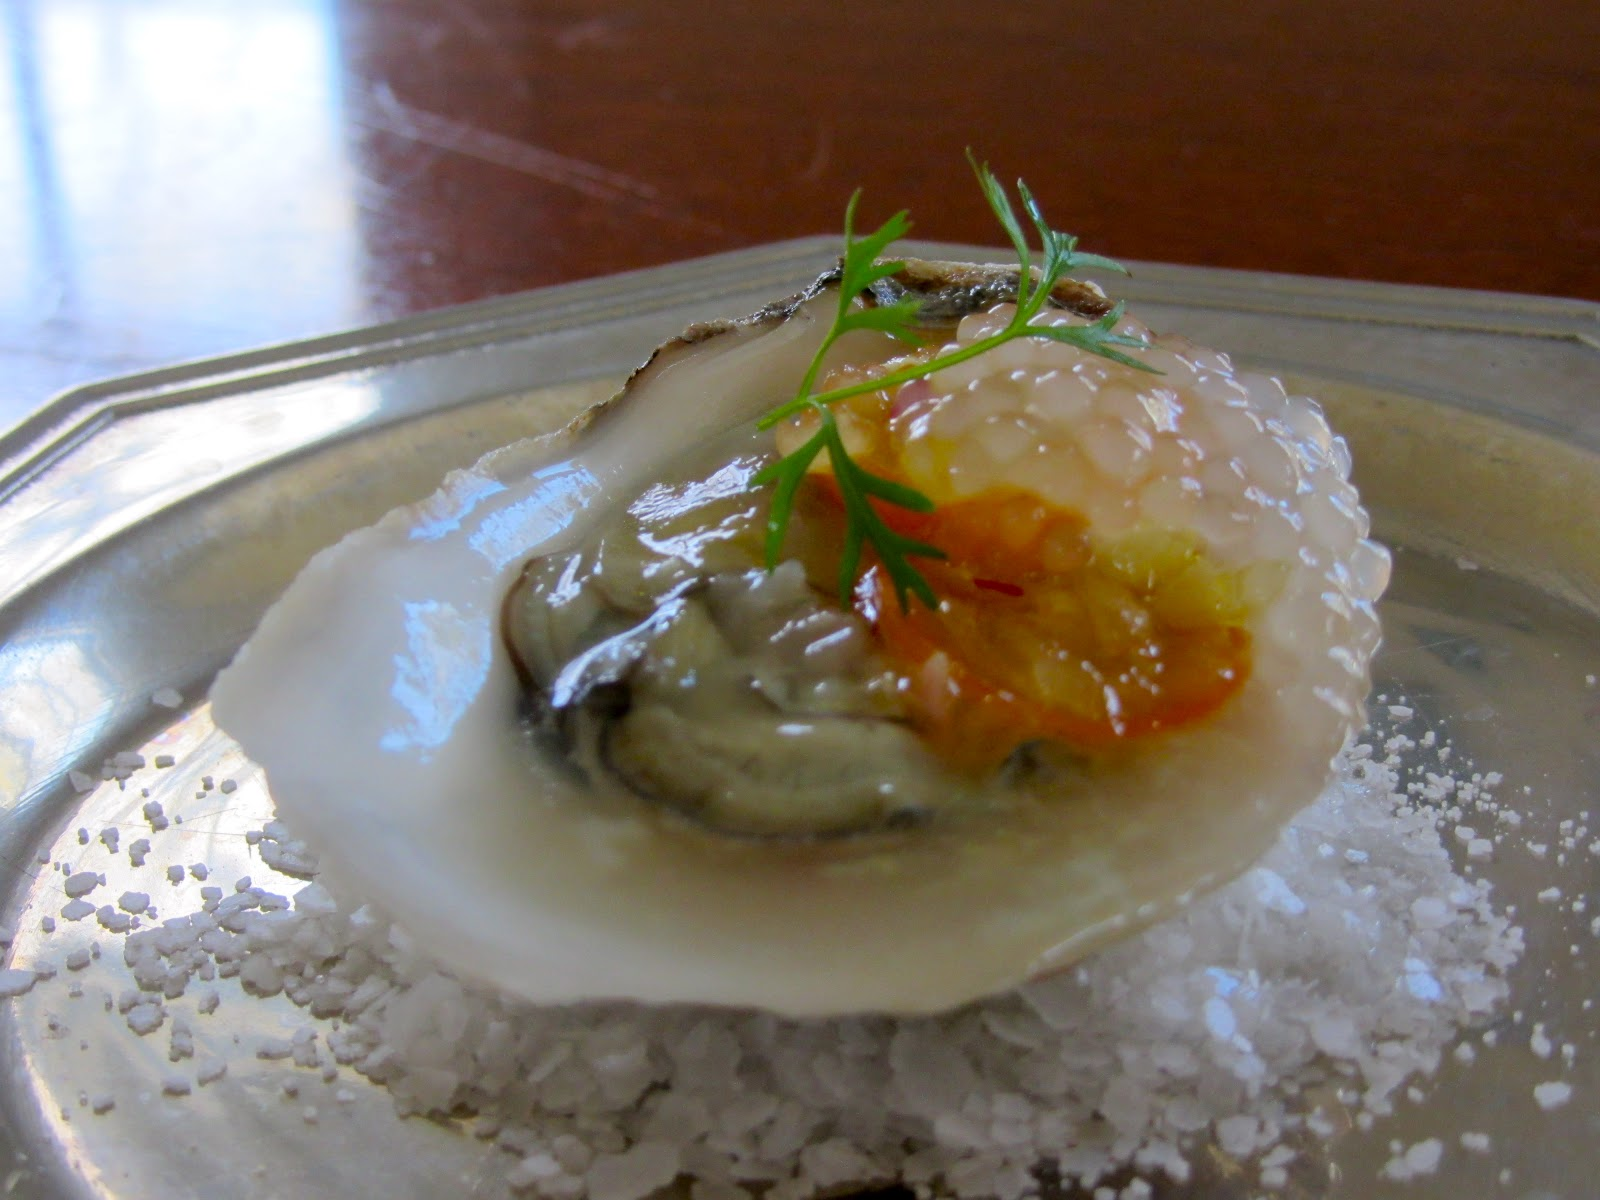 Jamie's Dinner Table: Oysters with an Asian Mignonette Sauce